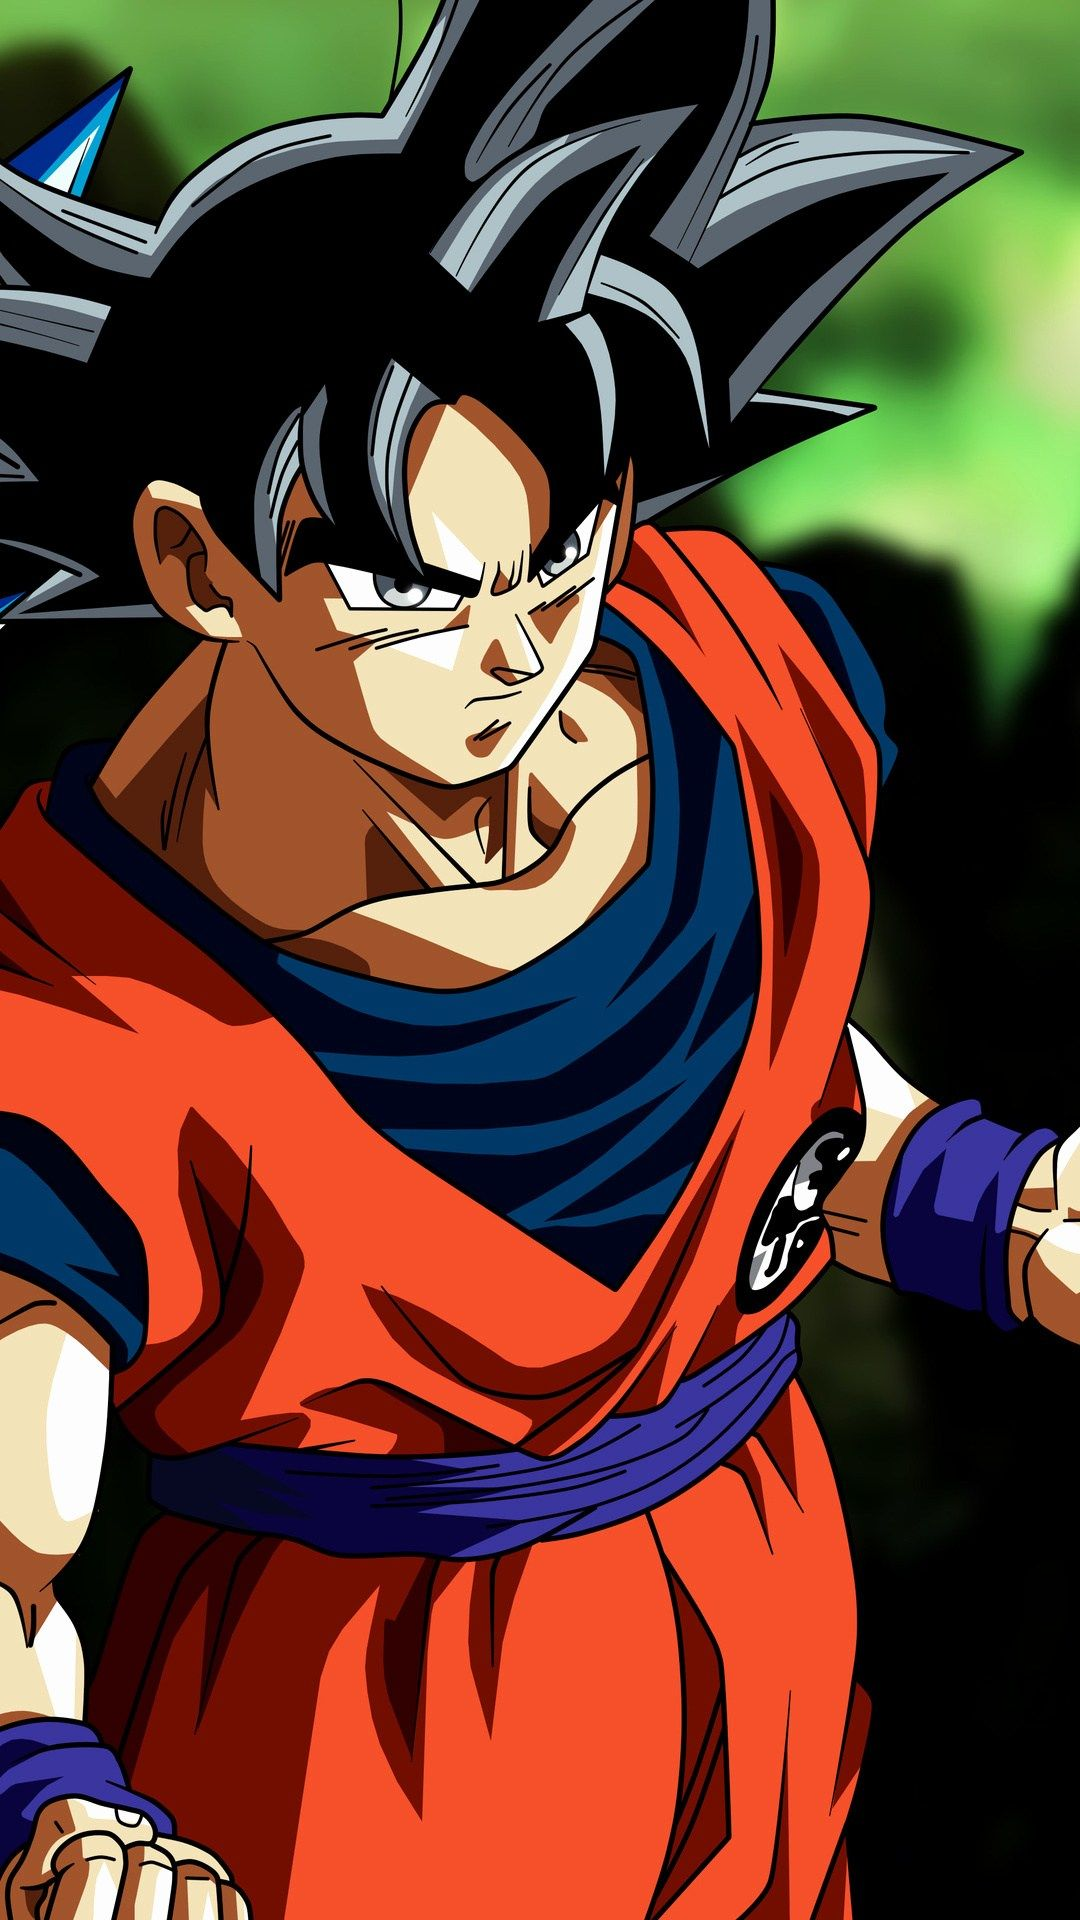 Goku Live Wallpaper Iphone 165517 Dragon Ball Wallpaper Iphone Live Wallpaper Iphone Anime Wallpaper Iphone